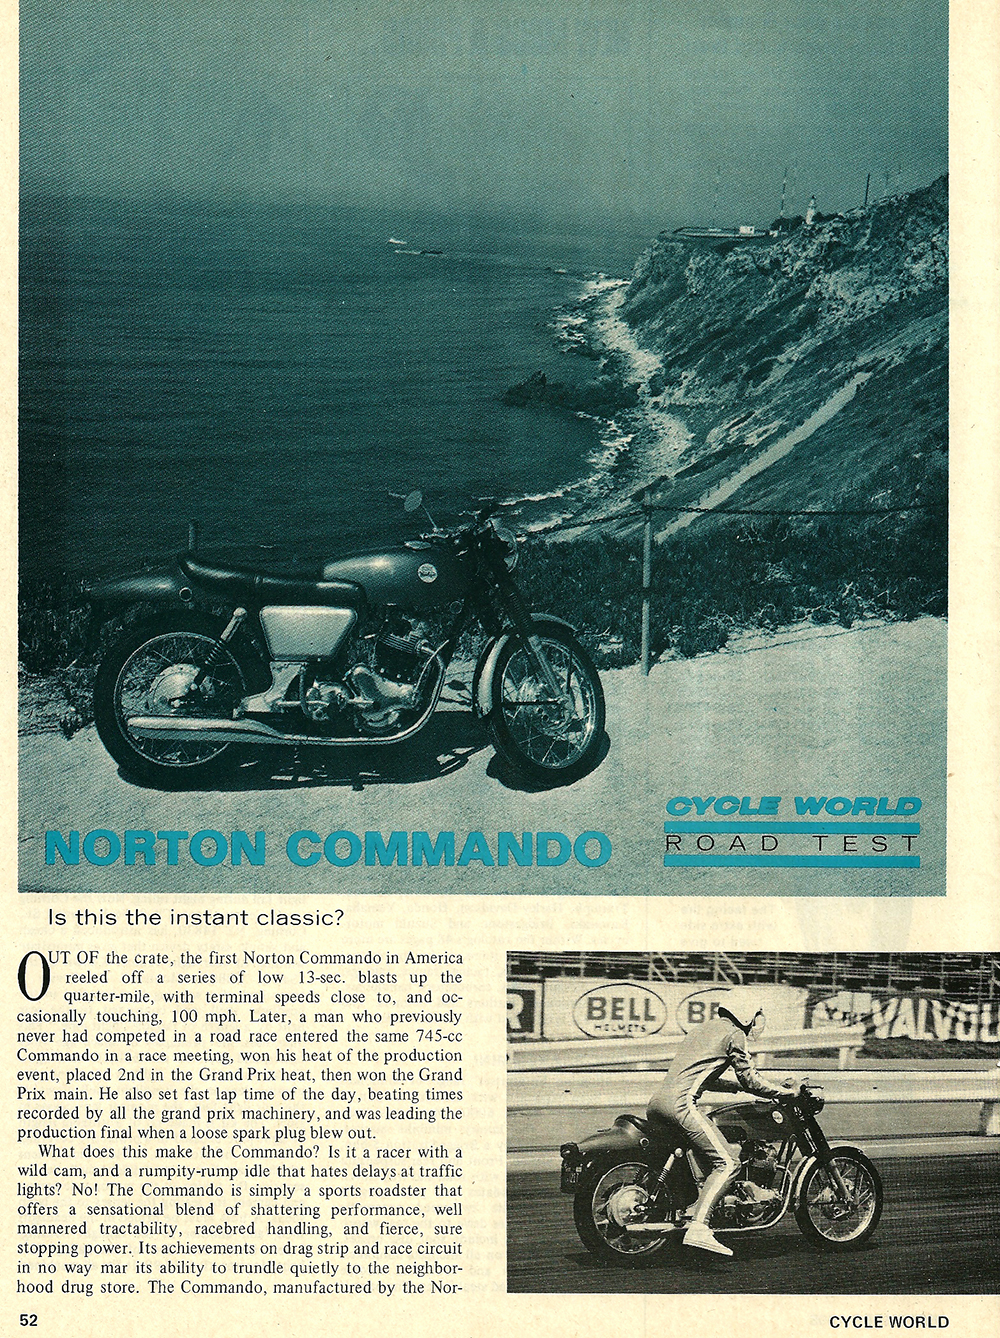 1968 Norton Commando 750 road test 01.jpg